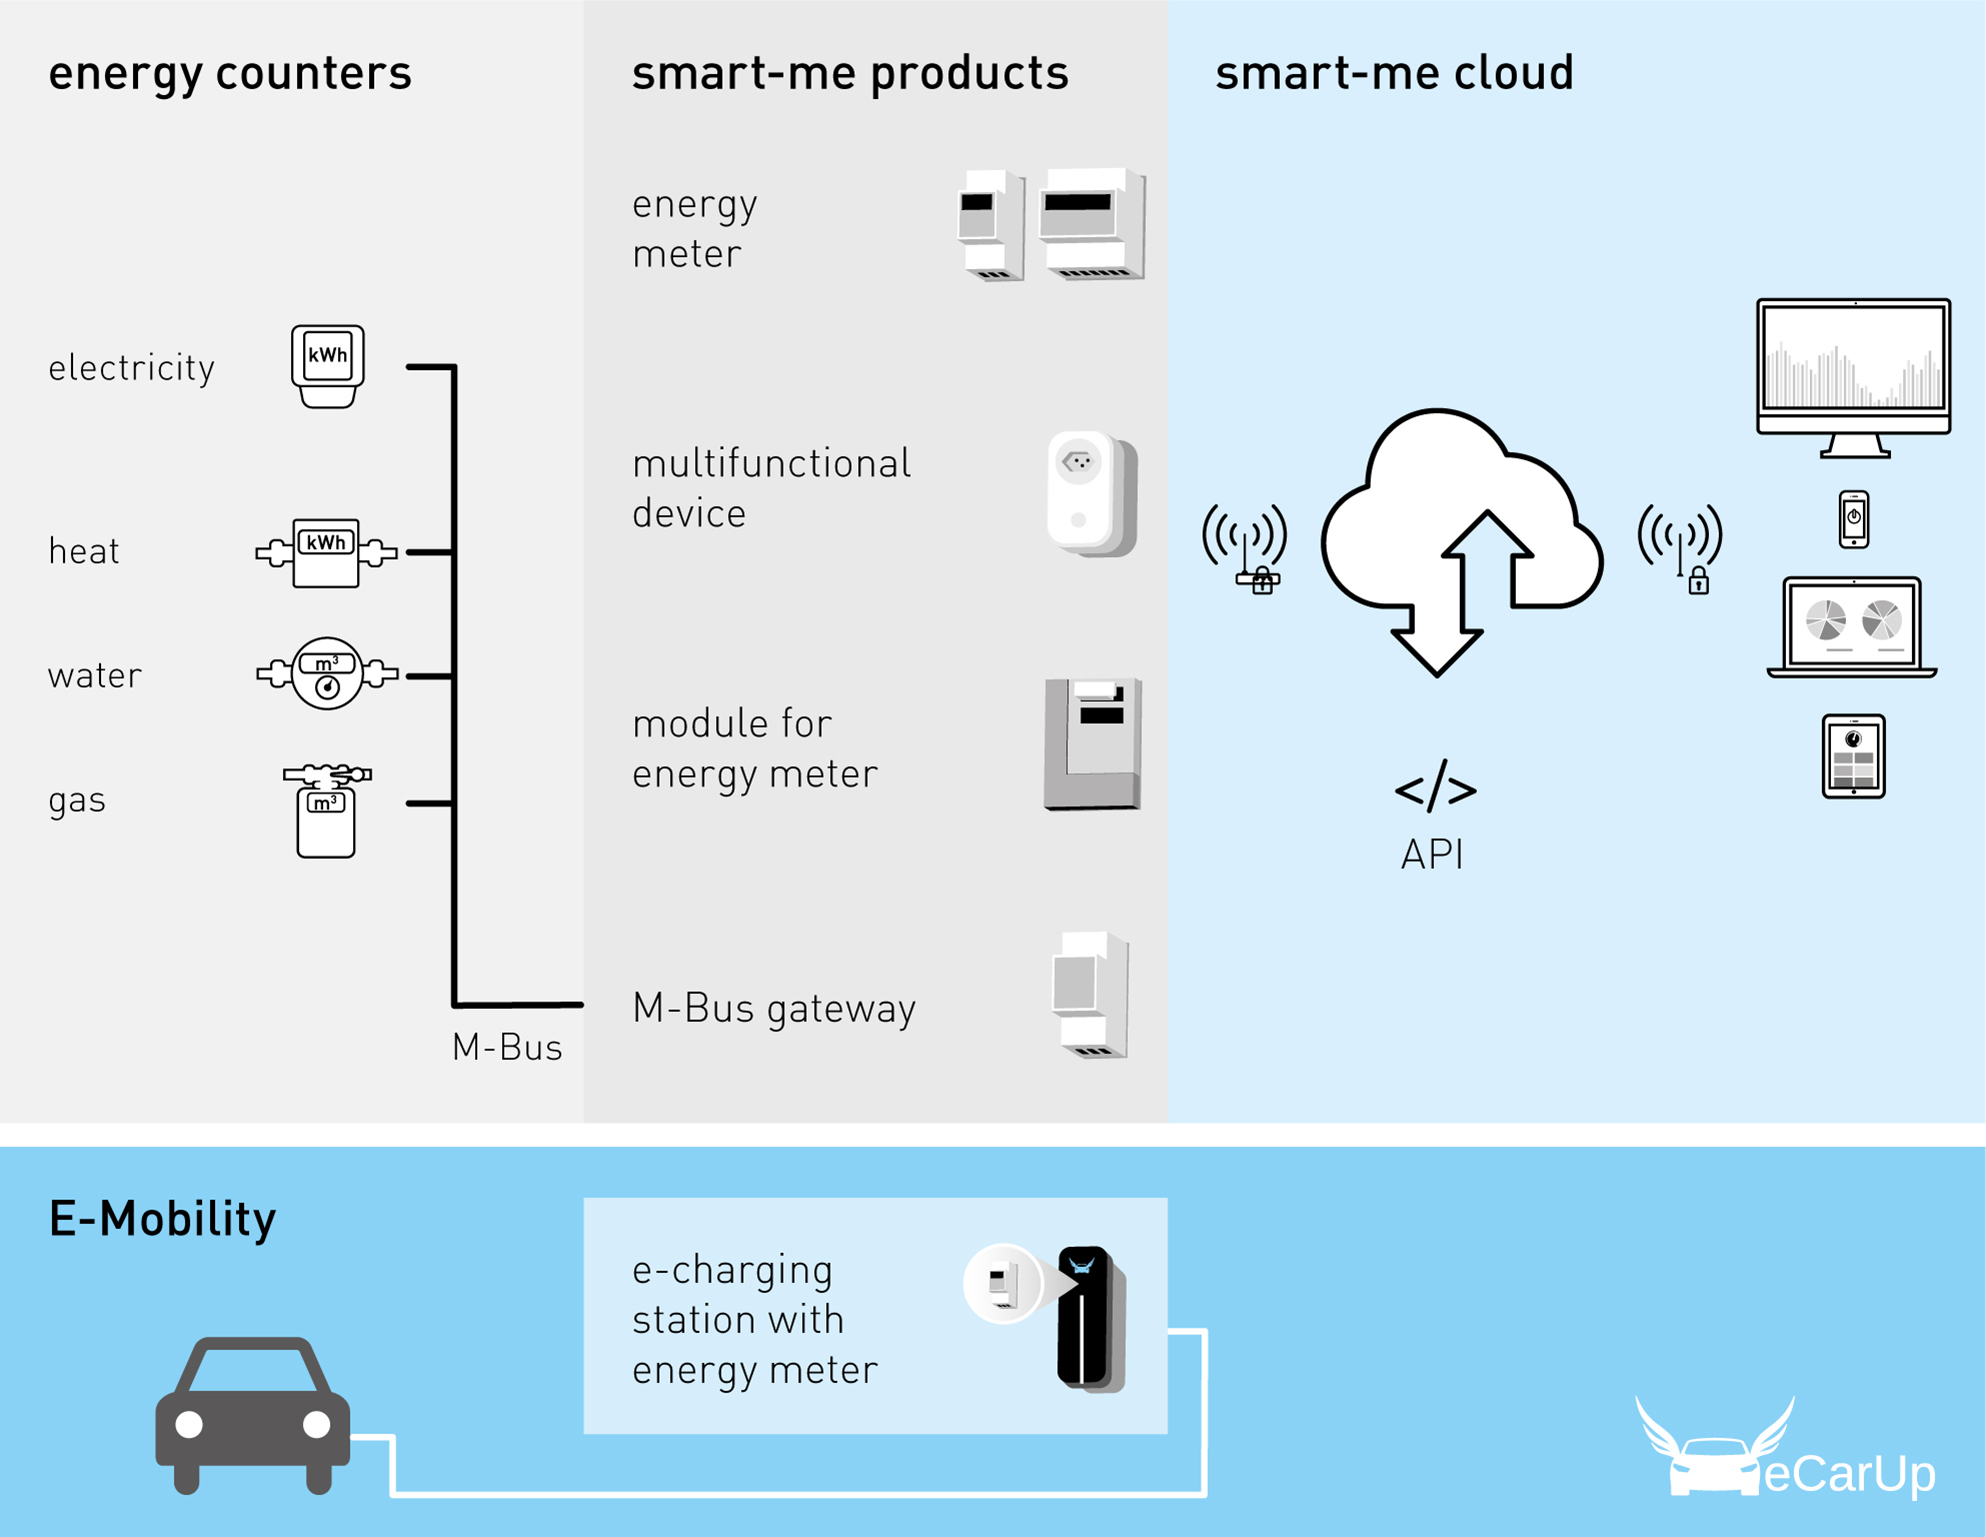 energy management with energy meters and cloud software